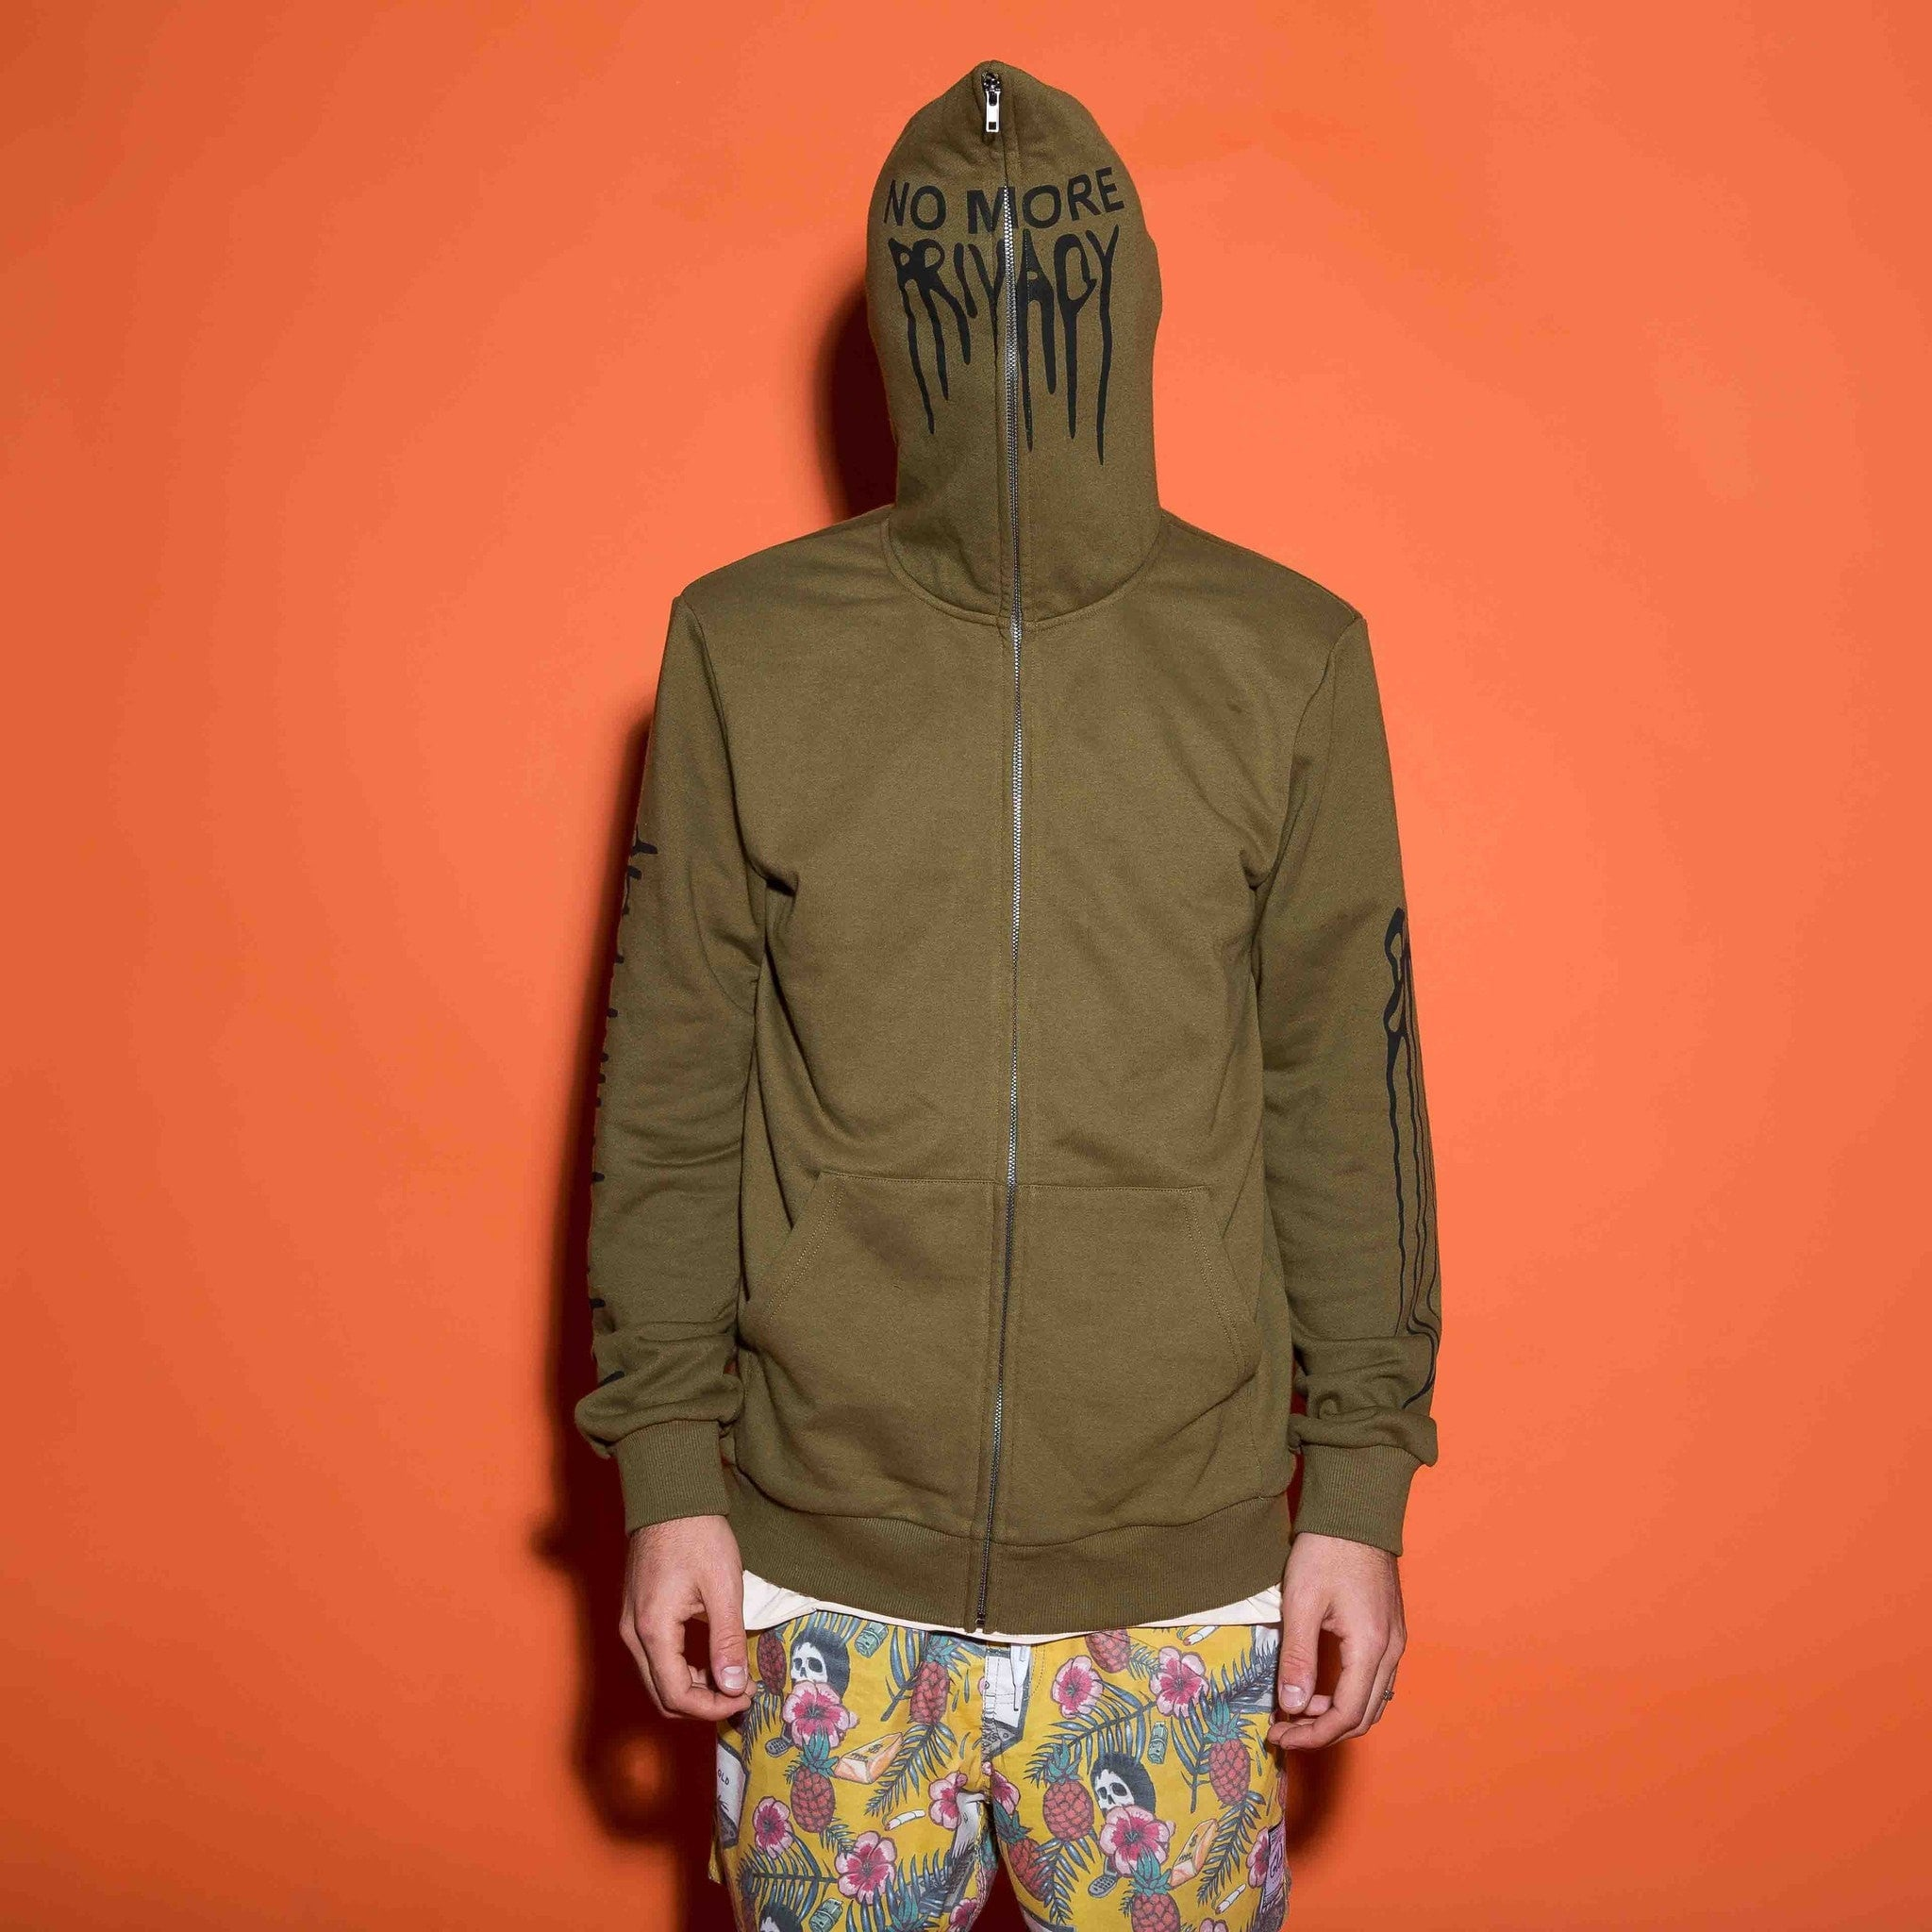 No Privacy Hoodie - Green - The GLD Shop